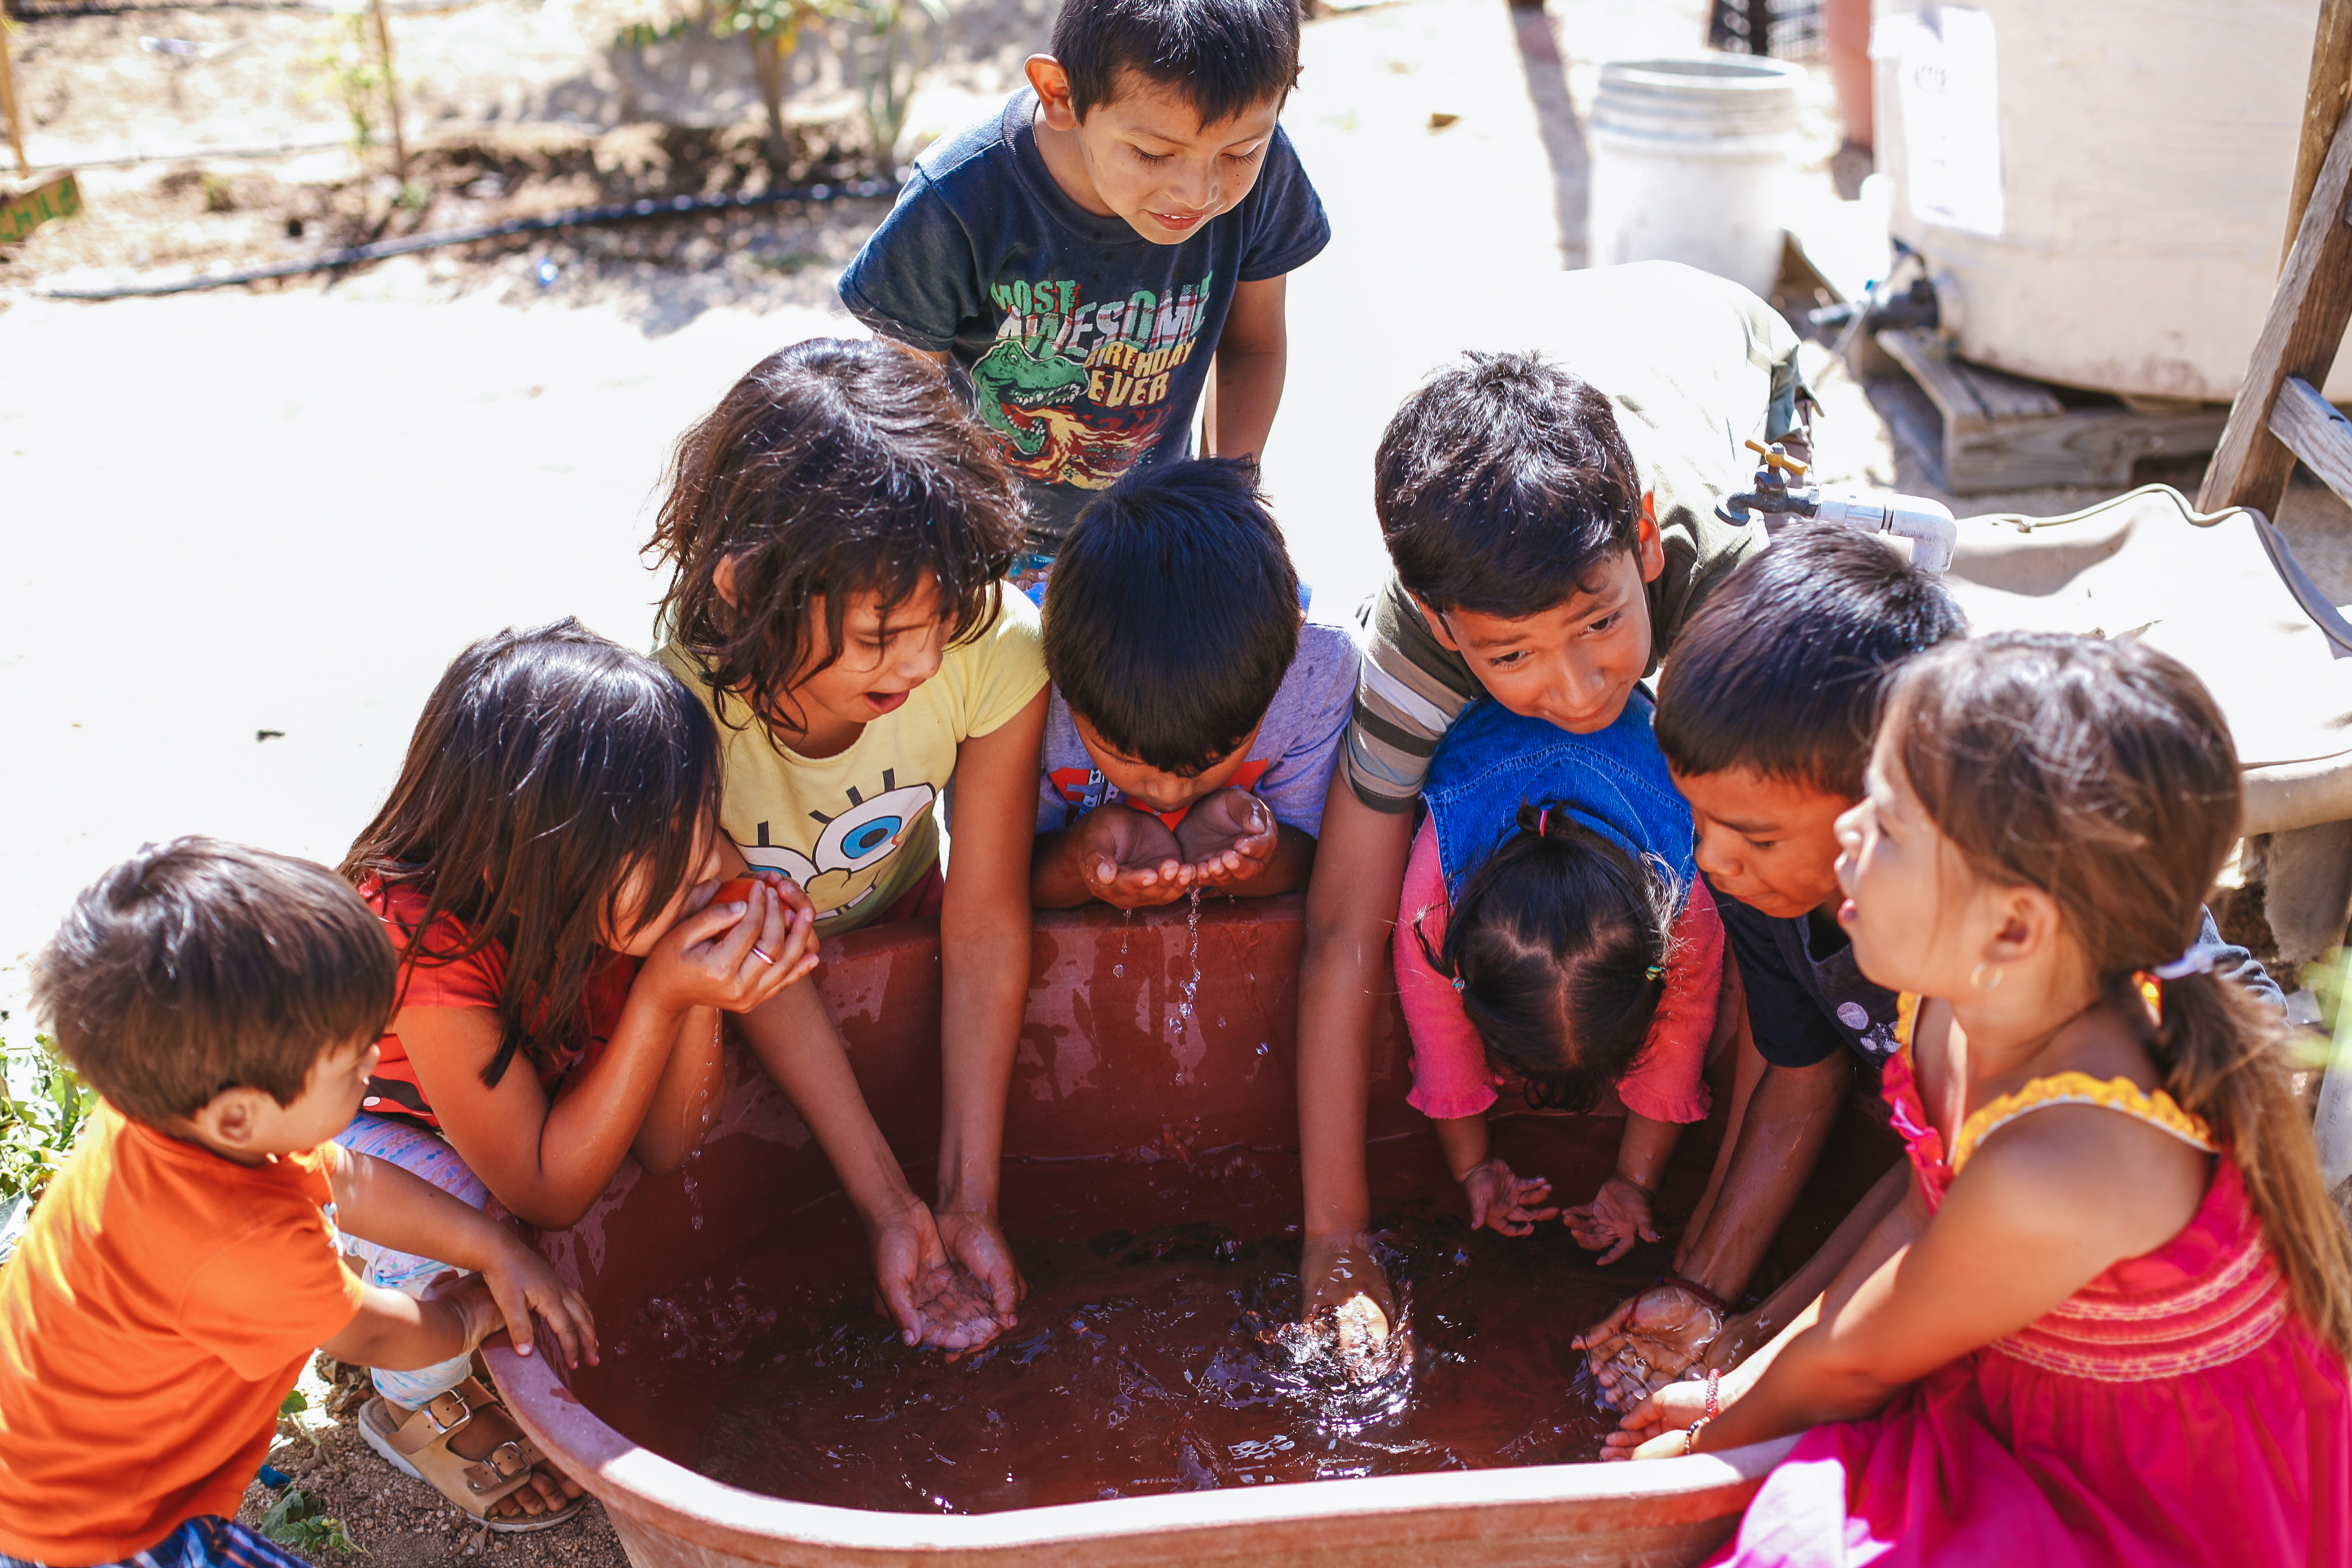 Children wash their hands in a tub full of water